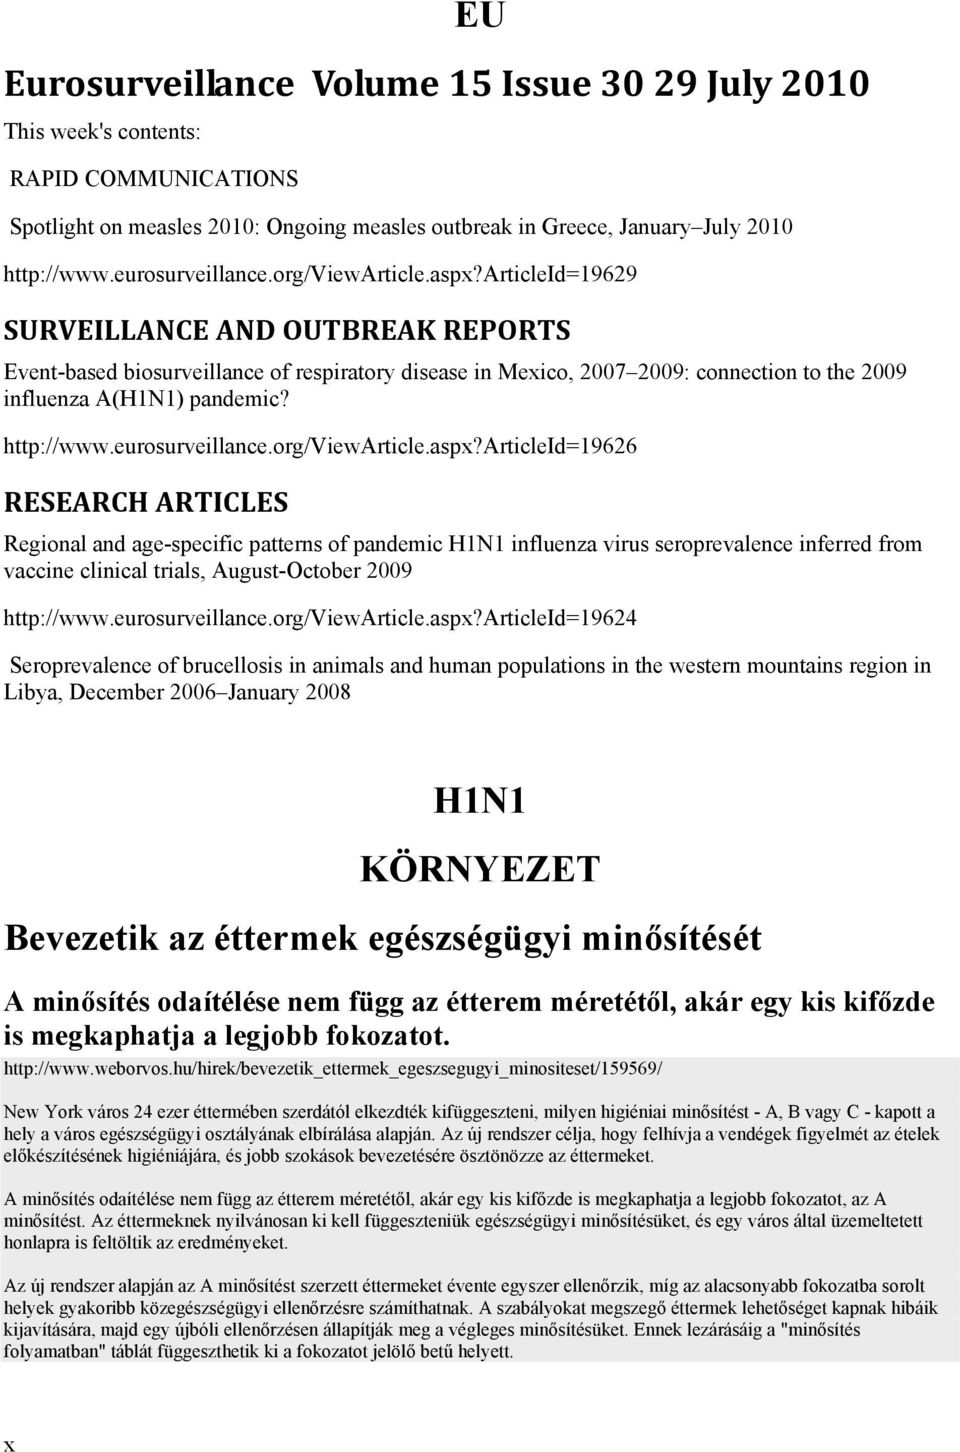 articleid=19629 SURVEILLANCE AND OUTBREAK REPORTS Event-based biosurveillance of respiratory disease in Meico, 2007 2009: connection to the 2009 influenza A(H1N1) pandemic? http://www.